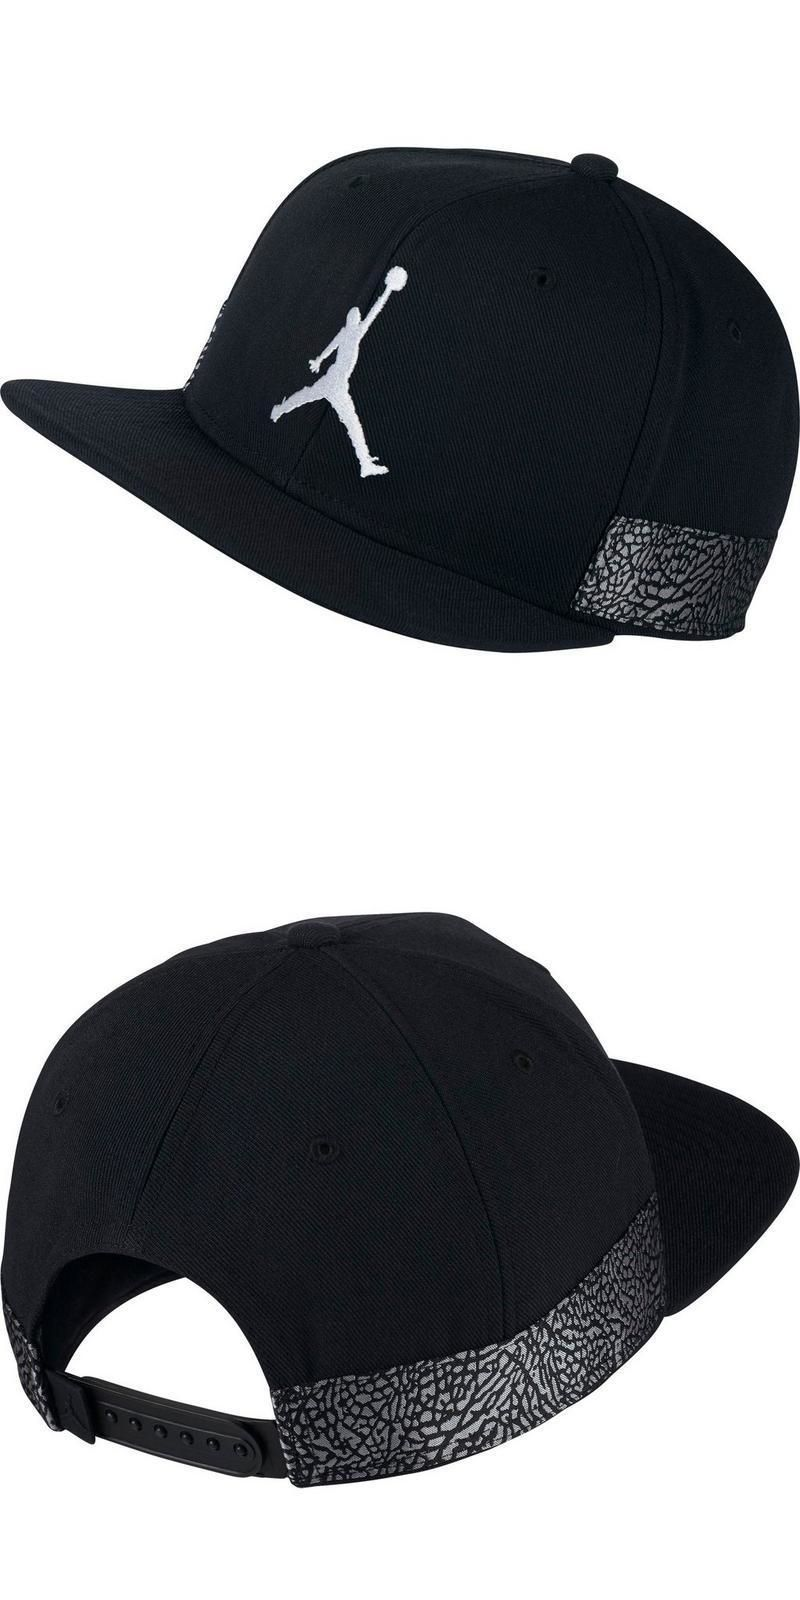 low priced d2b34 6192d Hats 163543  Air Jordan Jumpman Pro Aj3 Black Snapback Hat Flat Bill Retro  Cap New -  BUY IT NOW ONLY   24.49 on  eBay  jordan  jumpman  black   snapback   ...